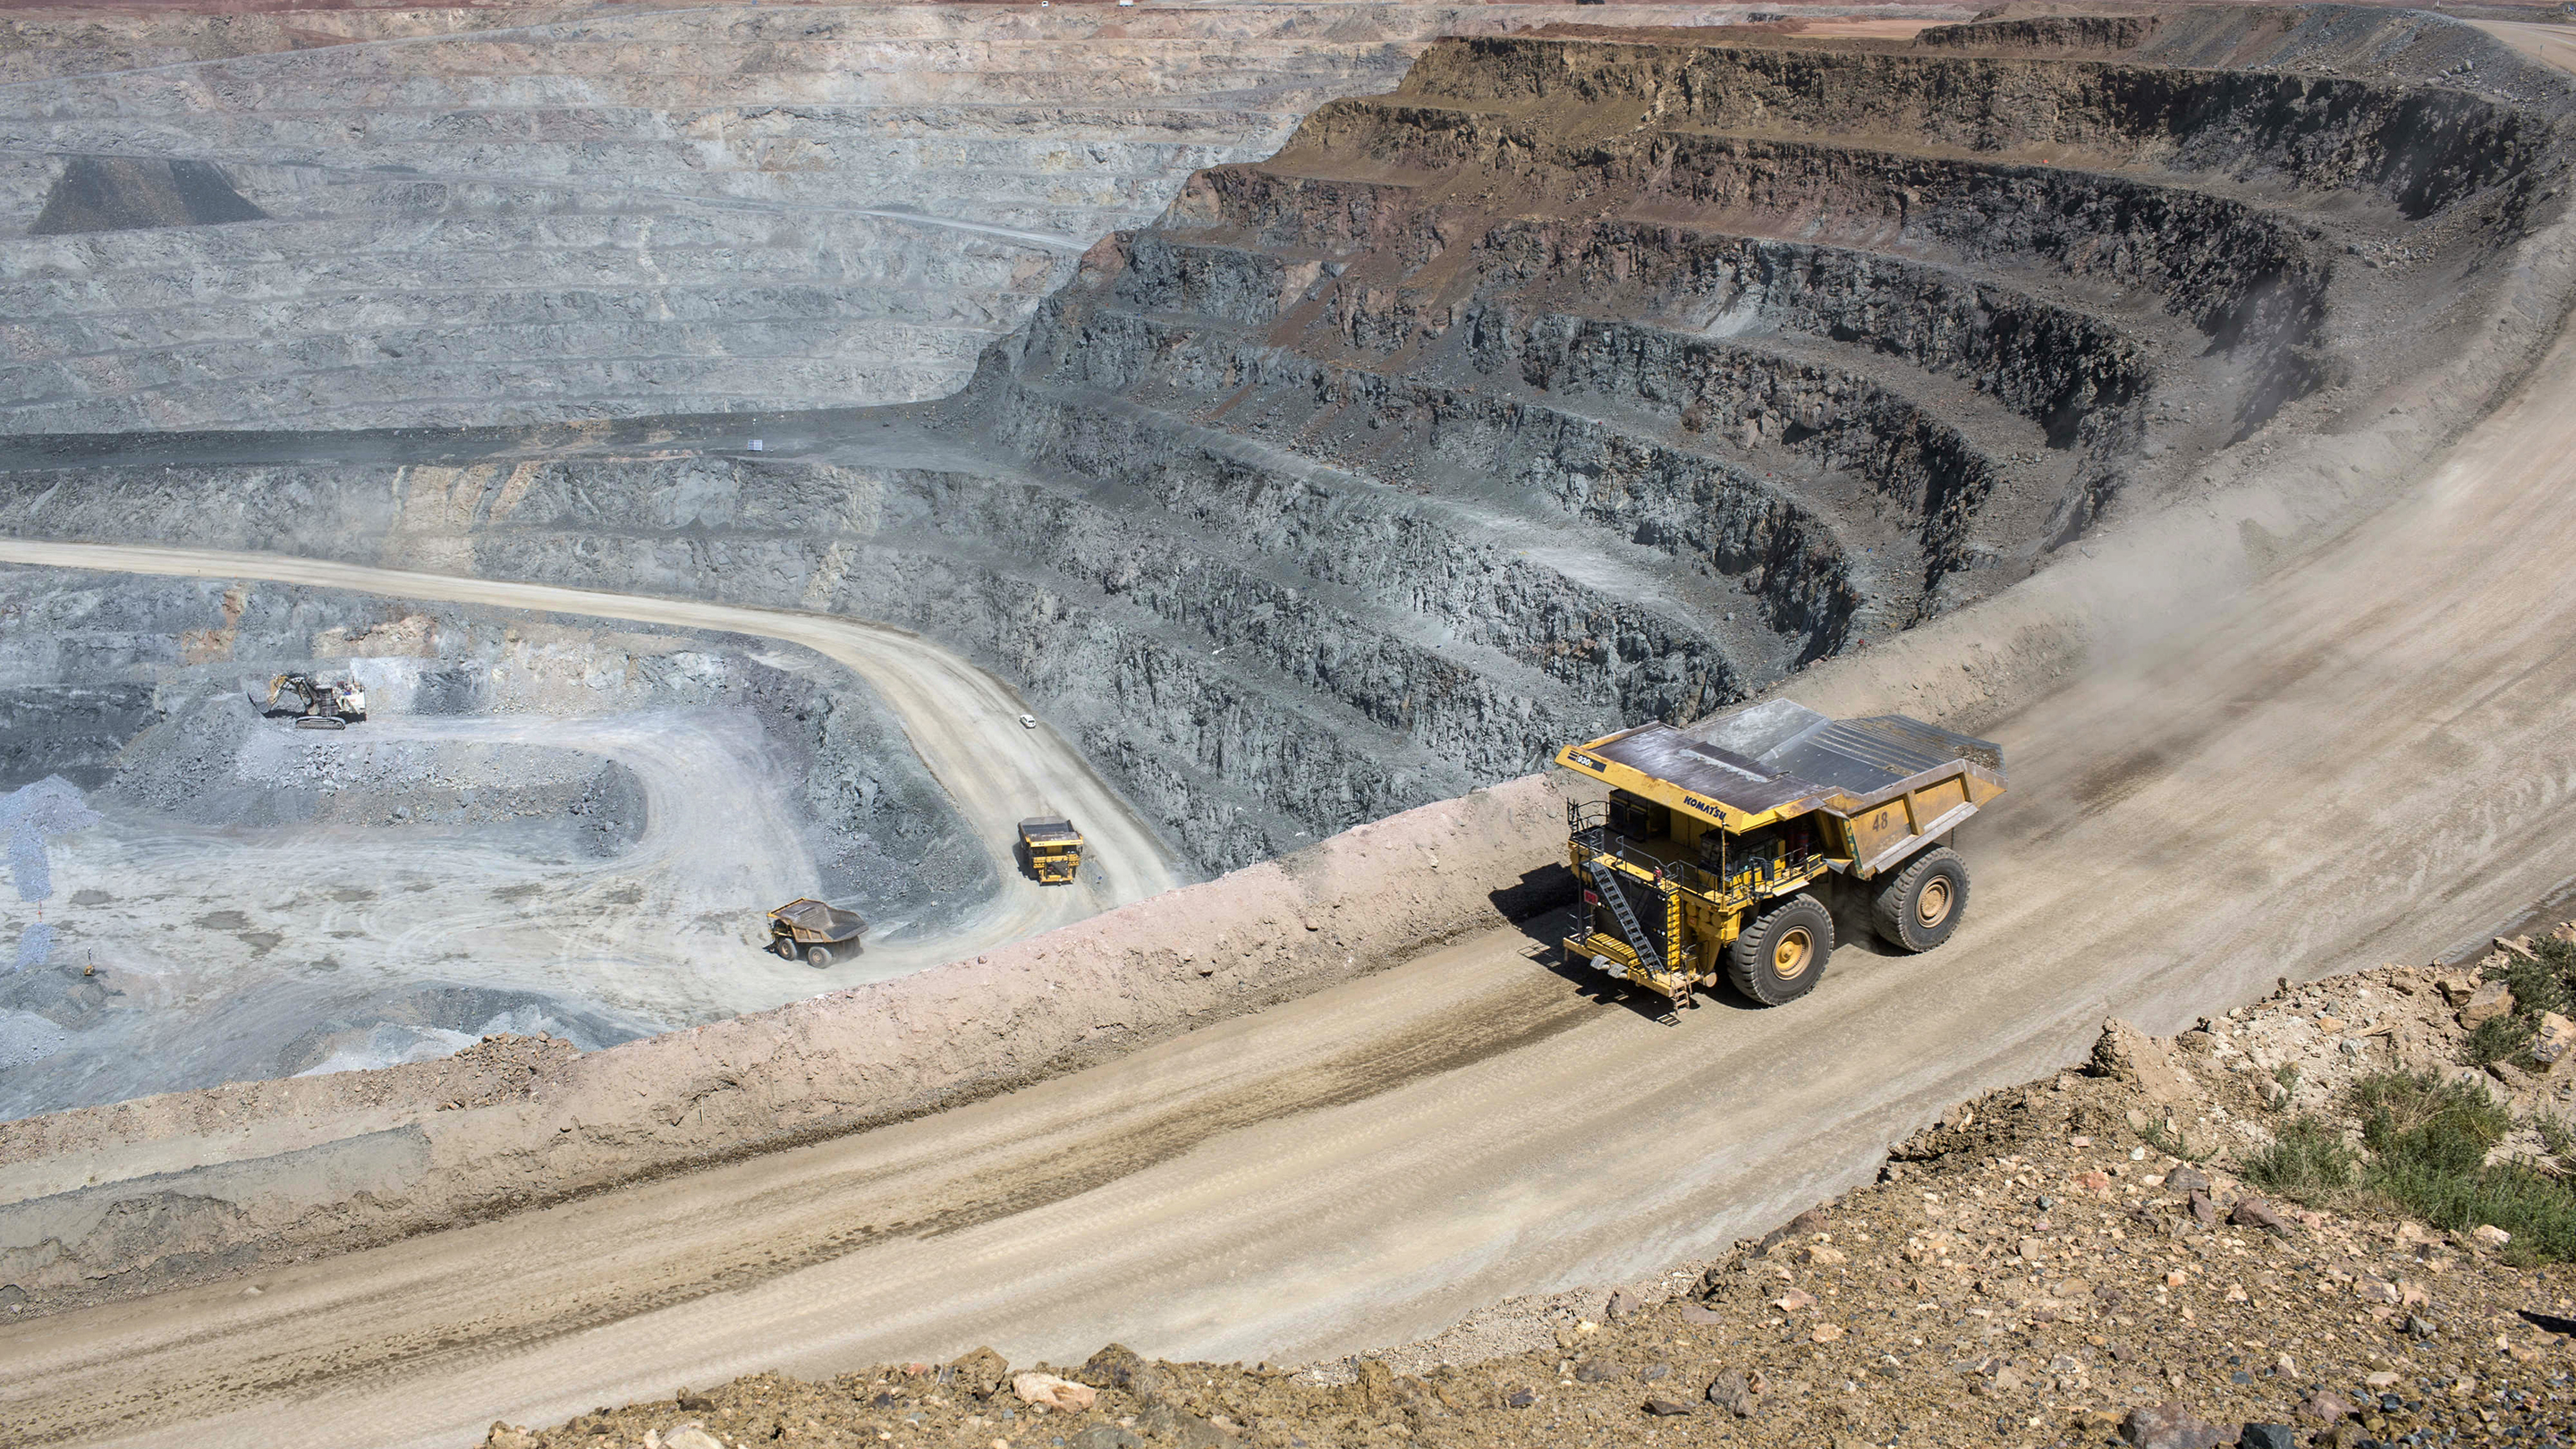 Operations At The Oyu Tolgoi Copper-Gold Mine